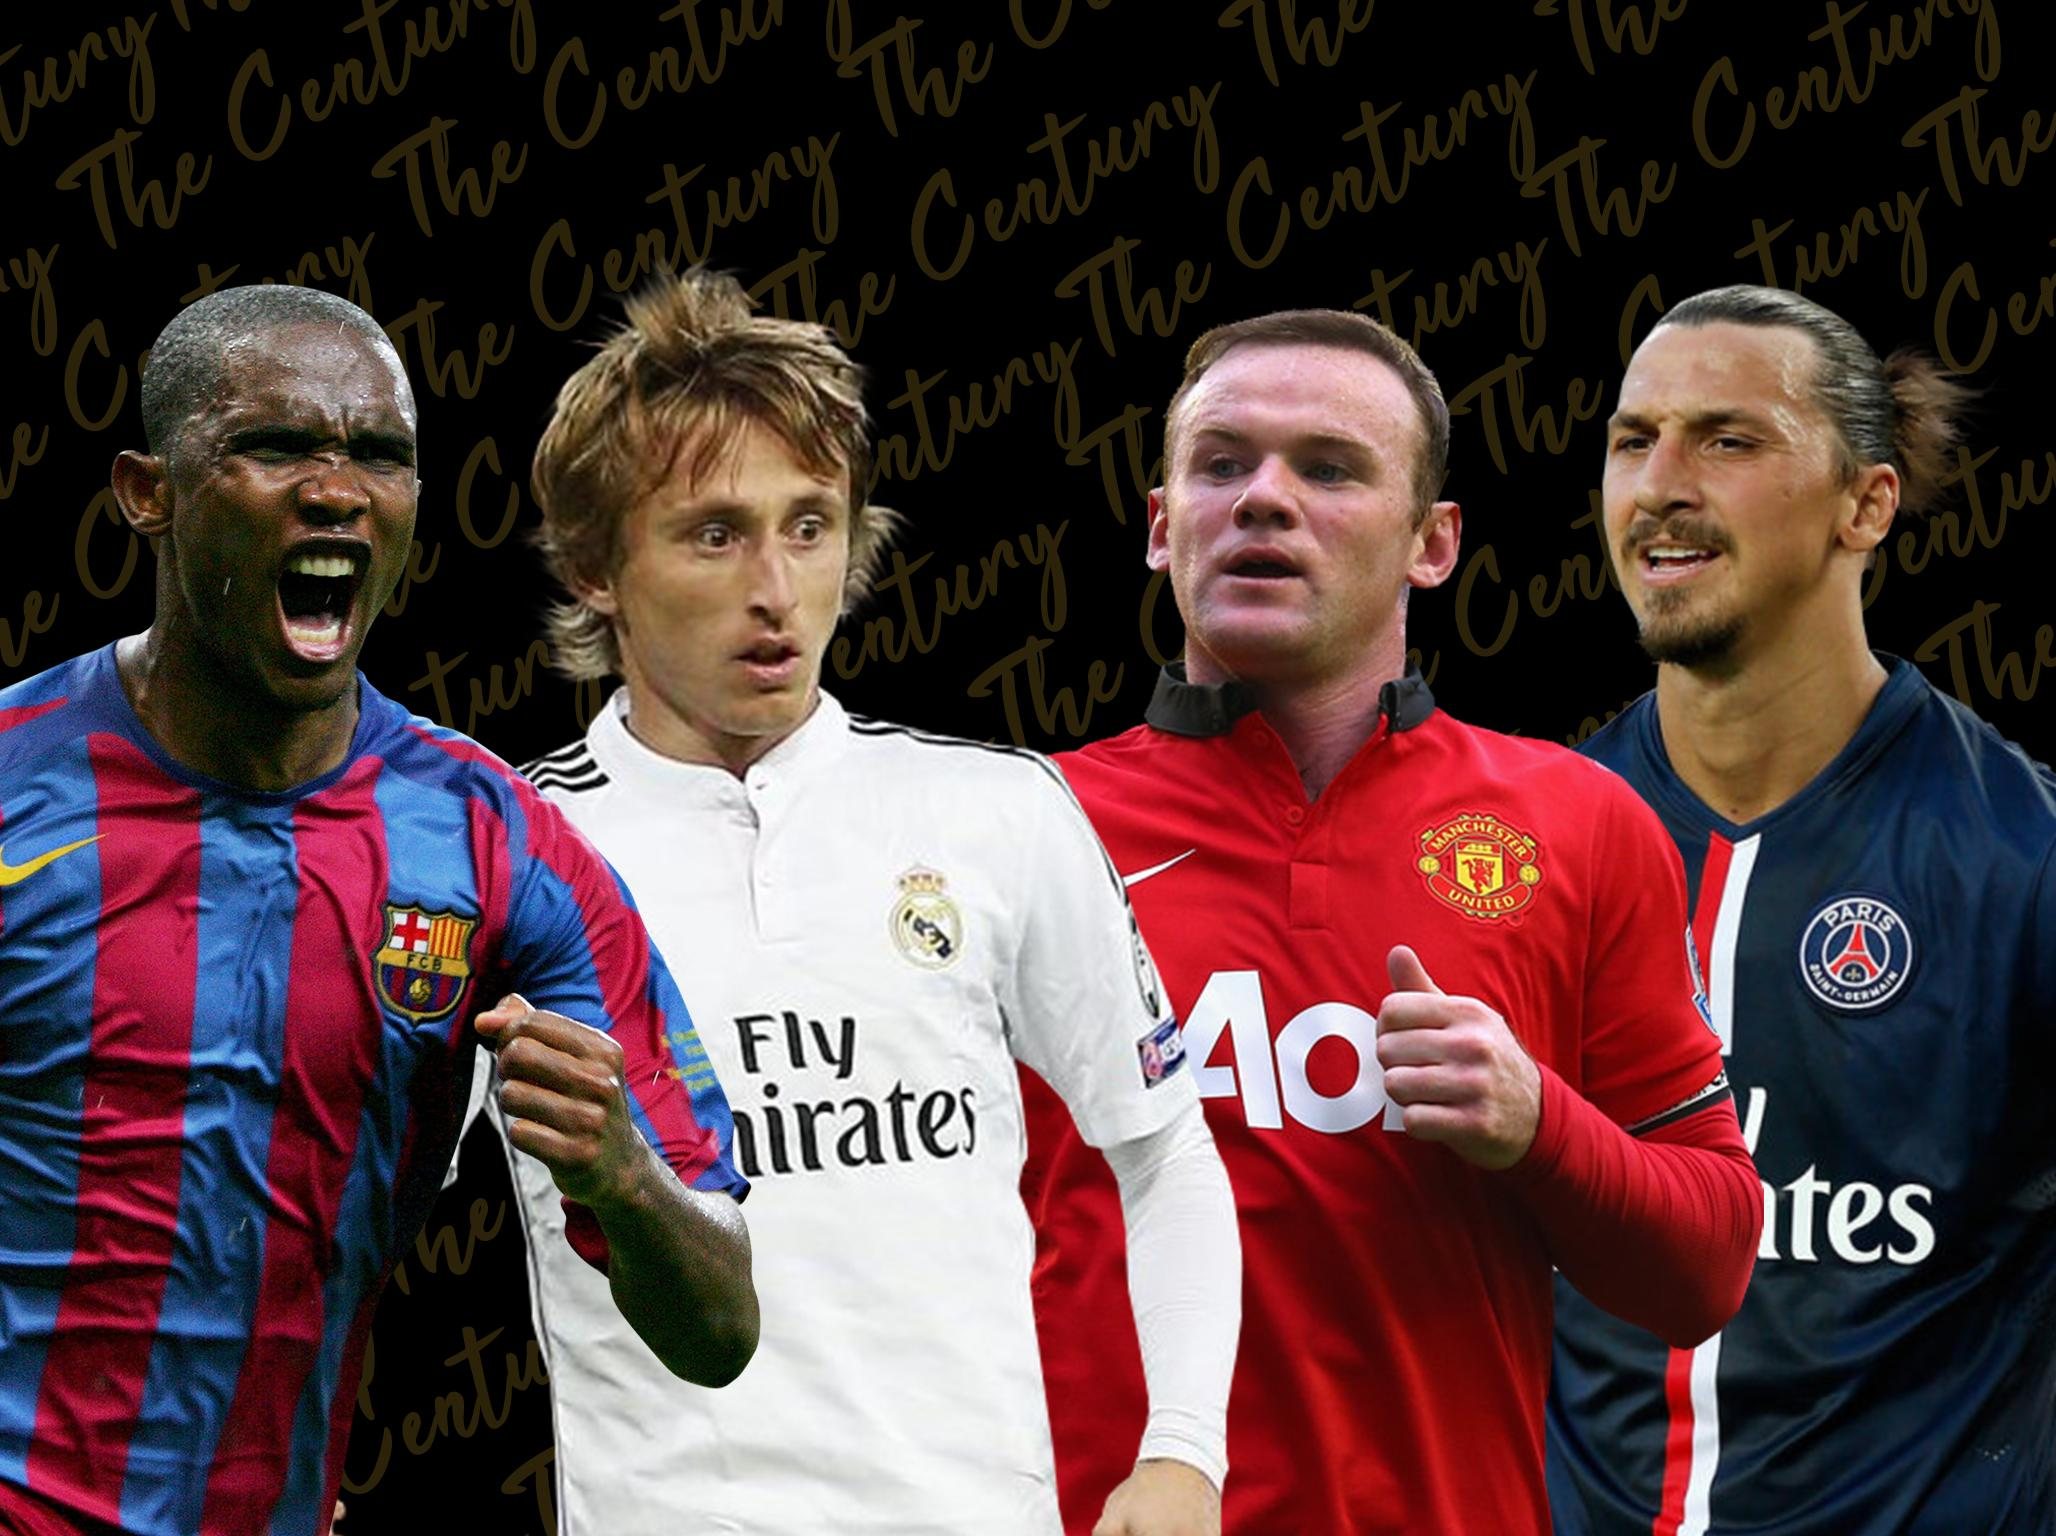 The Century: 40-21 countdown featuring Wayne Rooney, Zlatan Ibrahimovic, Roy Keane and more